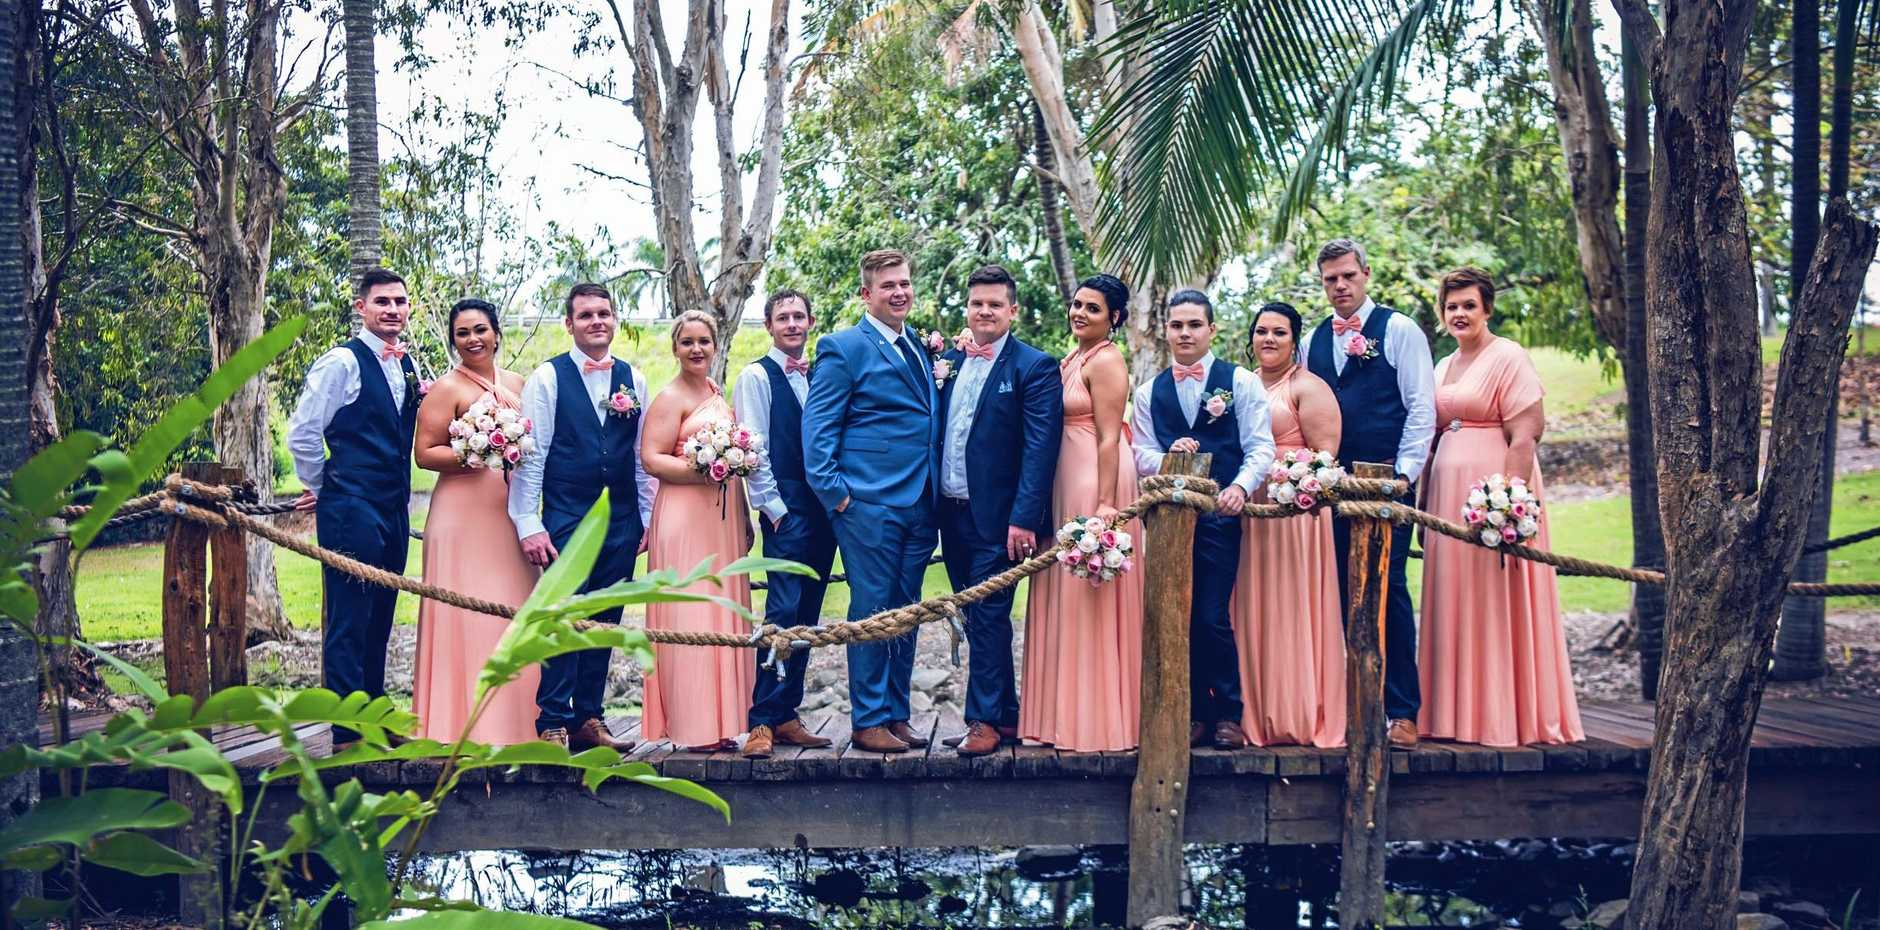 JUST MARRIED: Michael Lewis and Tyson Limpus with their wedding party after their July 7 marriage.